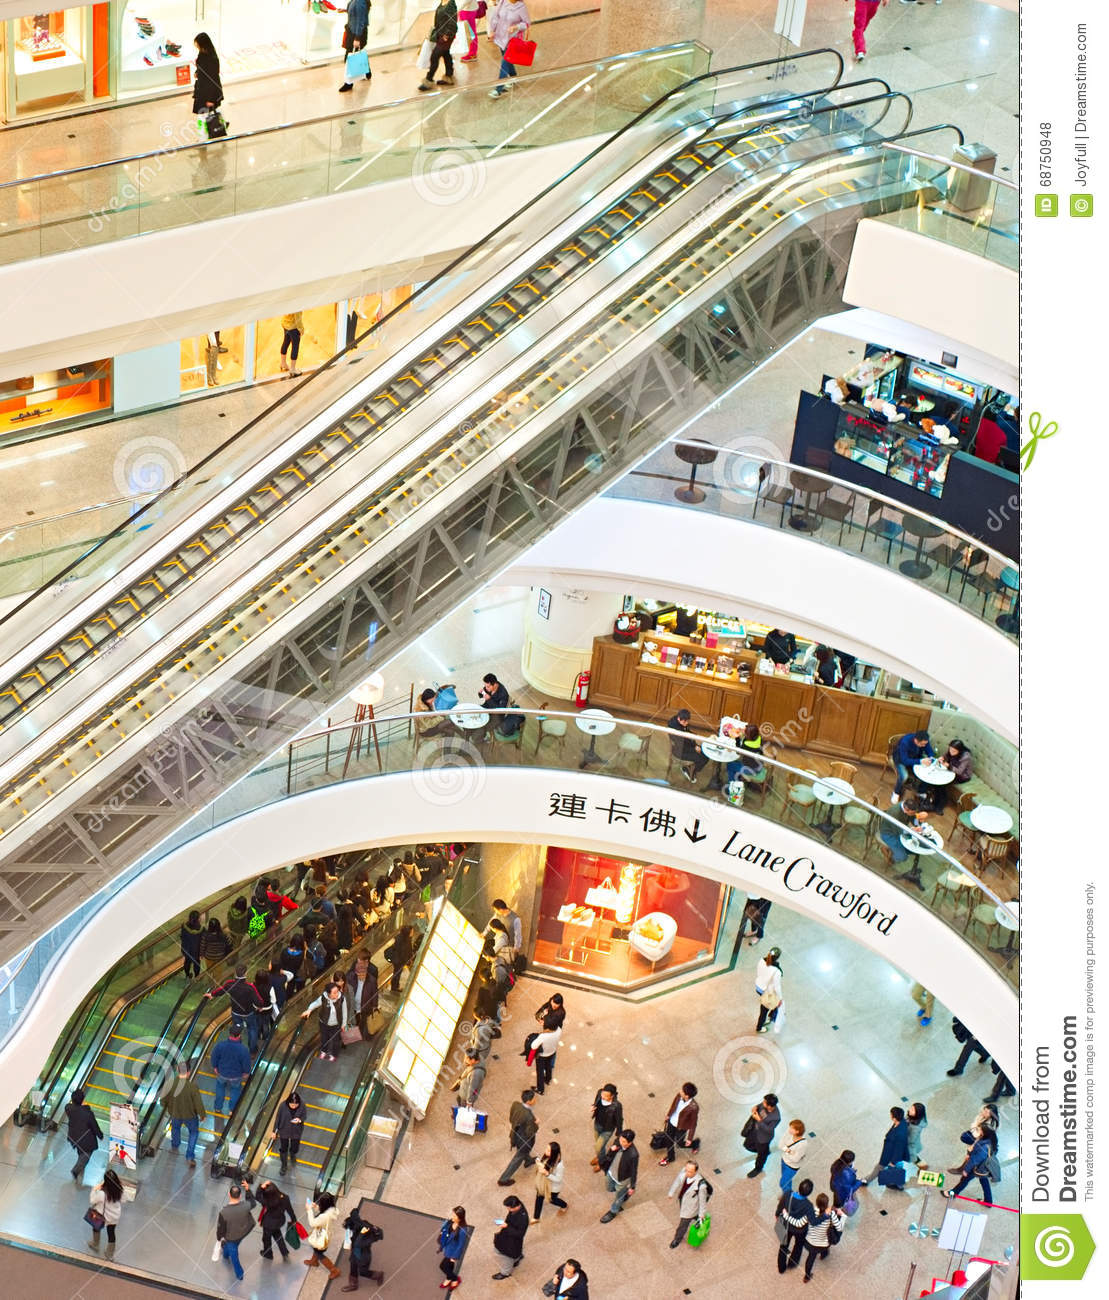 Hong Kong Shopping: Times Square Shopping Mall, Hong Kong Editorial Image